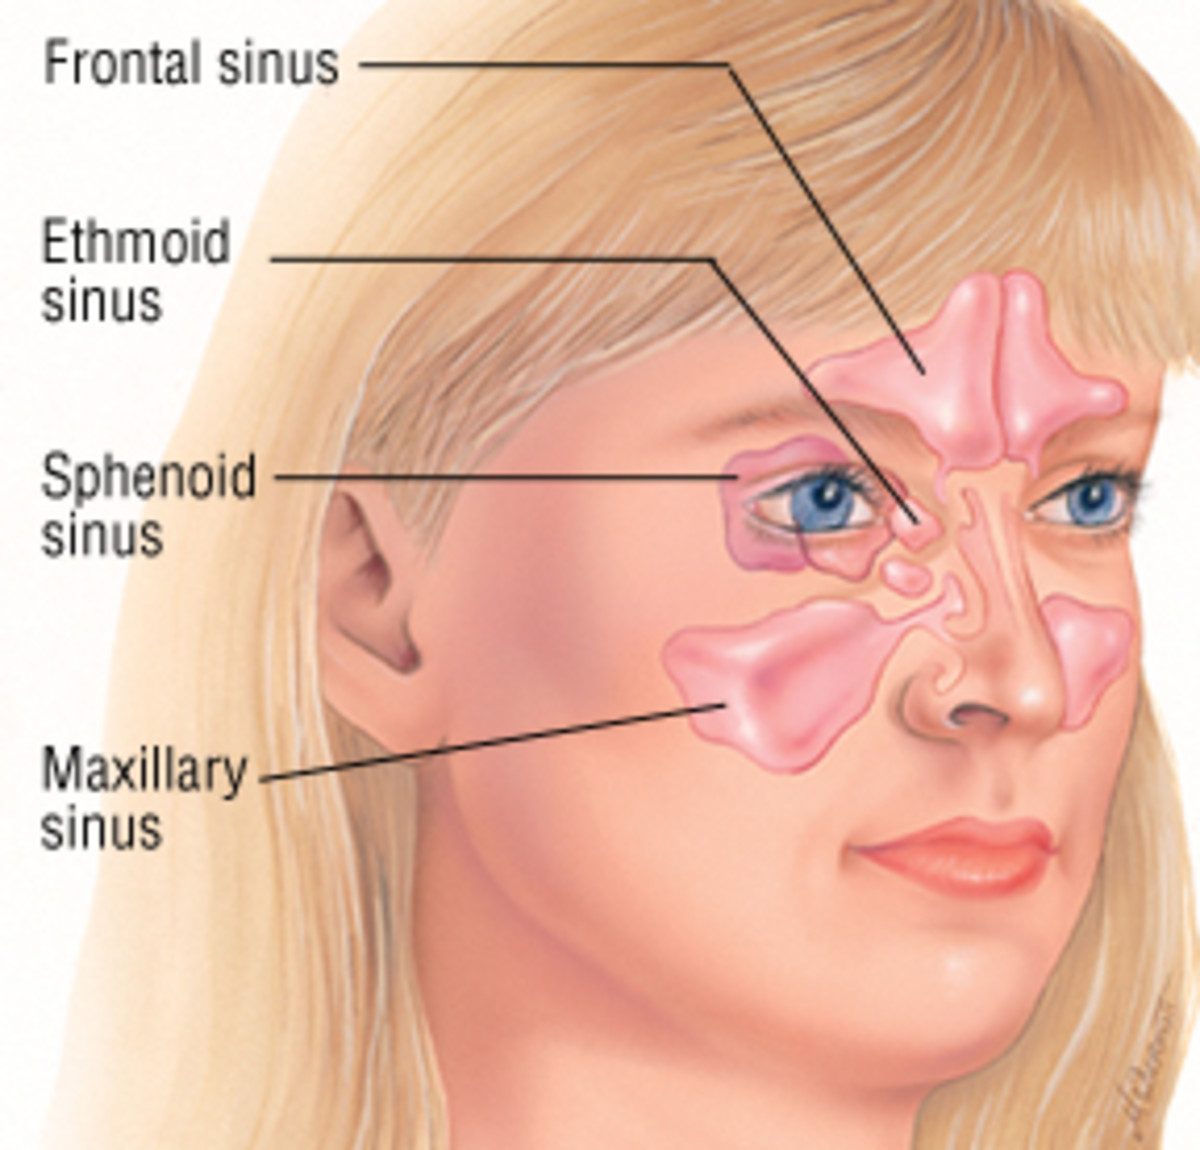 Position of the sinuses